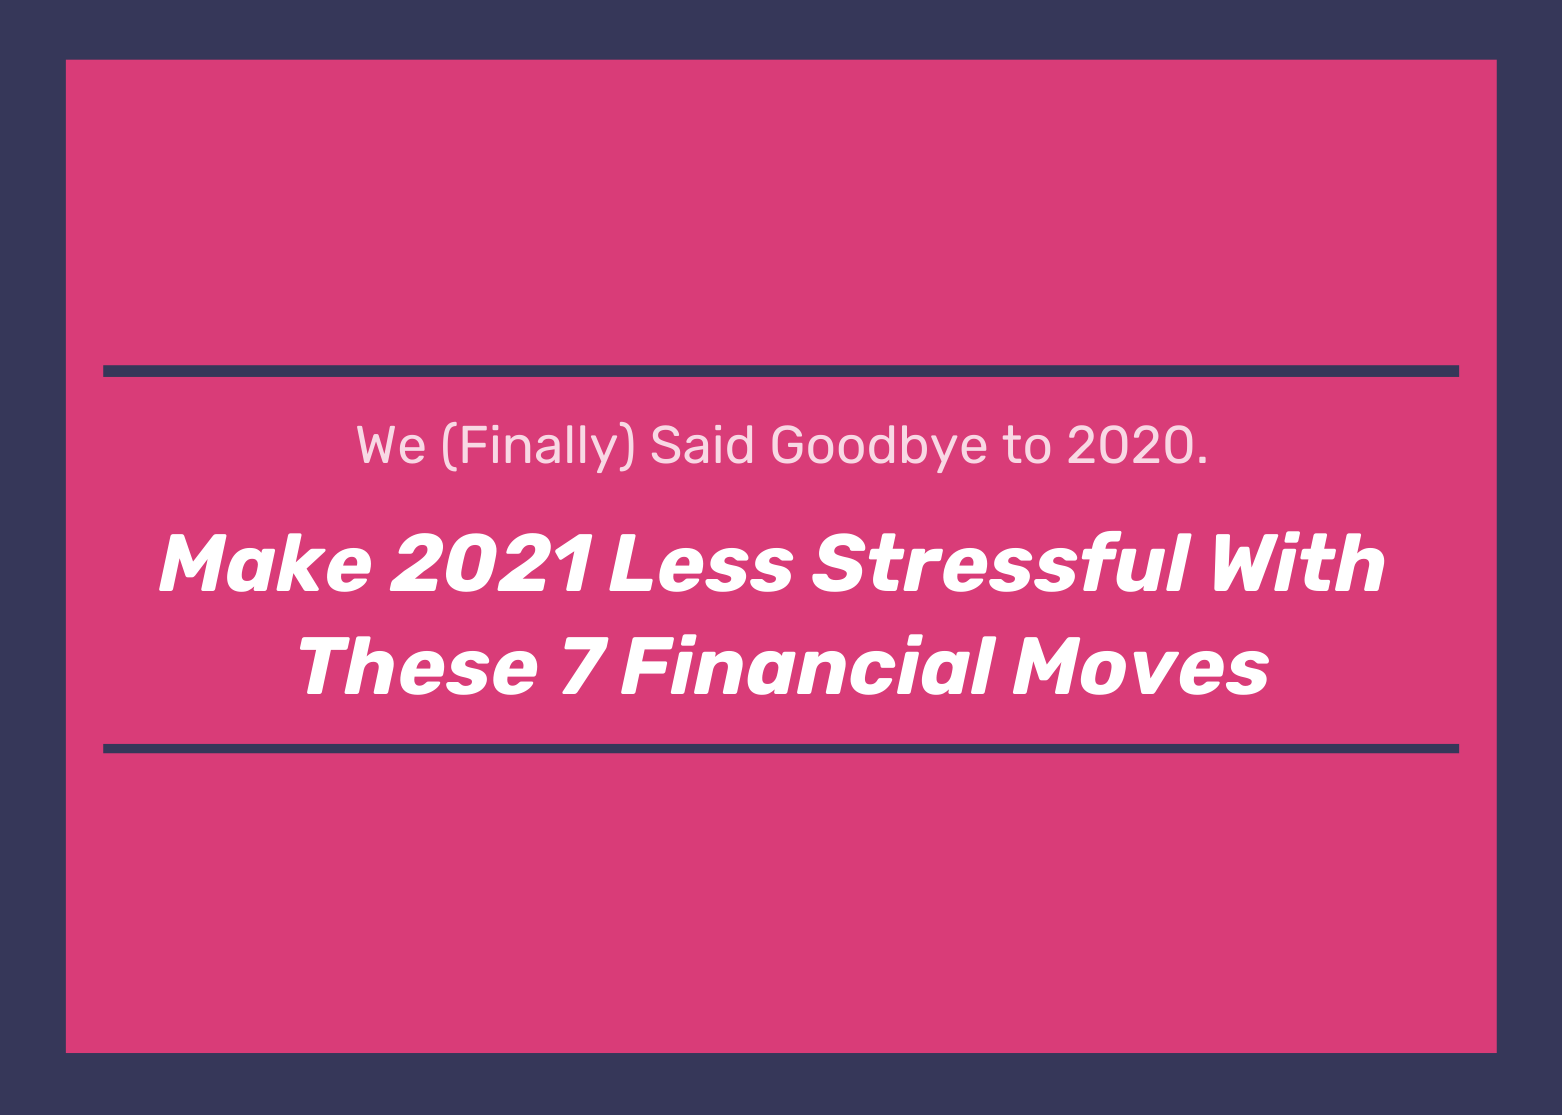 7 Financial Ideas to Help Make 2021 less Stressful Thumbnail